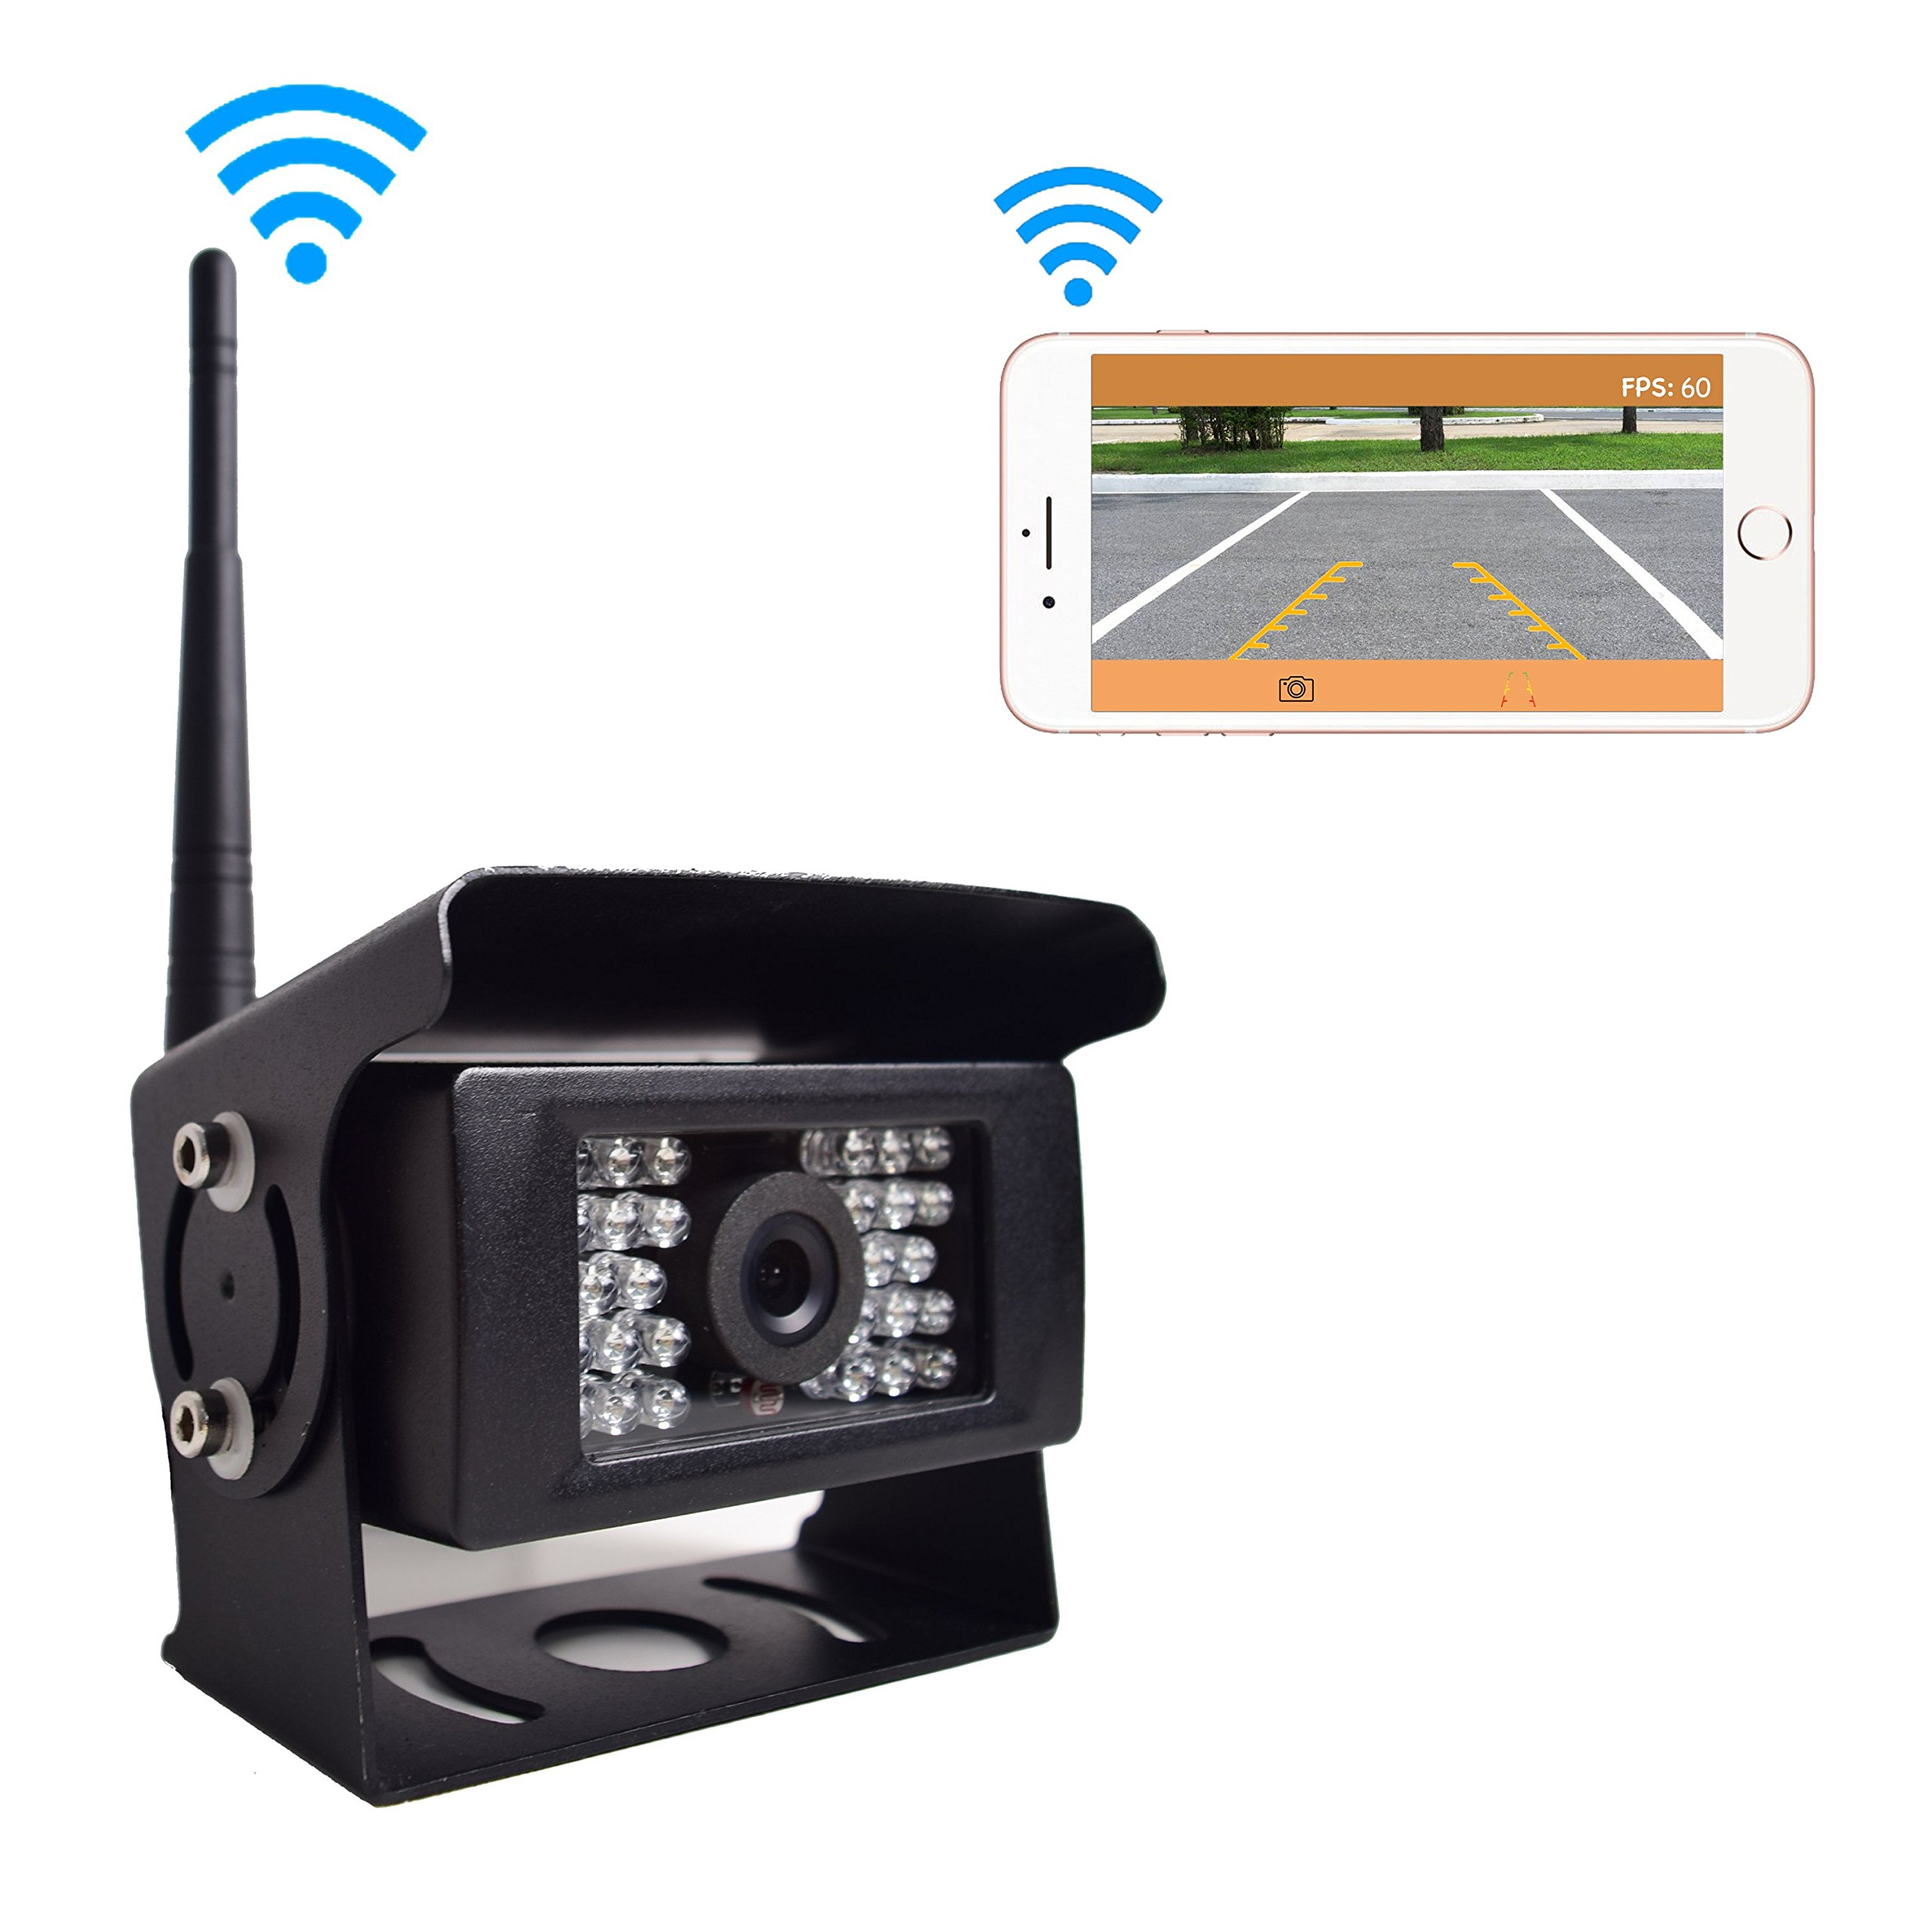 Digital Wireless Backup Camera for Truck RV Camper Vans Trailer, Wifi Rear View Cam 28 IR Lights Night Vision Waterproof Work with iPhone iPad Android Tablet, Transmission Distance upto 100FT, 12-24V